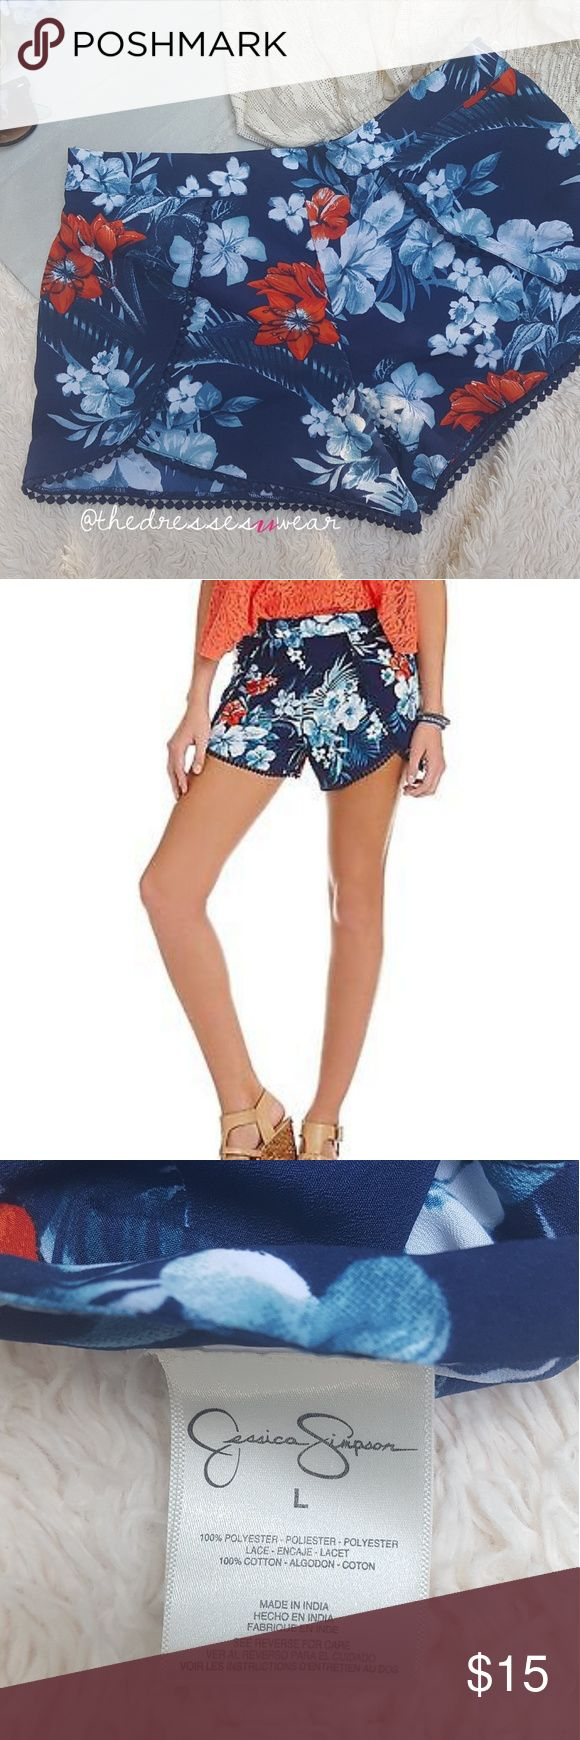 Tropical Print Pompom trim Jessica Simpson Shorts These cute tropical print shorts with their Pompom fringe and stechy waistband with its easy pull on style and vibrant print are going to be super fun for those hot summer days Jessica Simpson Shorts